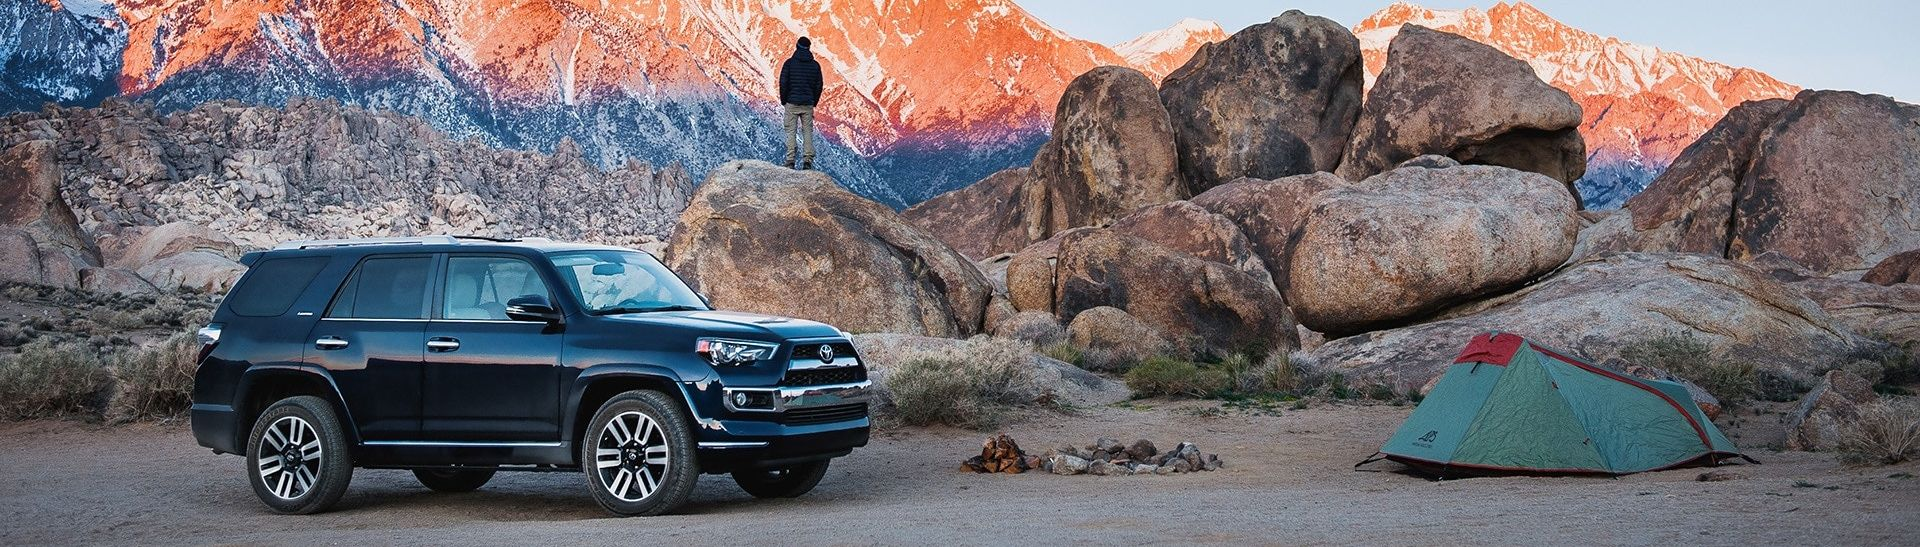 2019 Toyota 4Runner Leasing near West Chester, PA